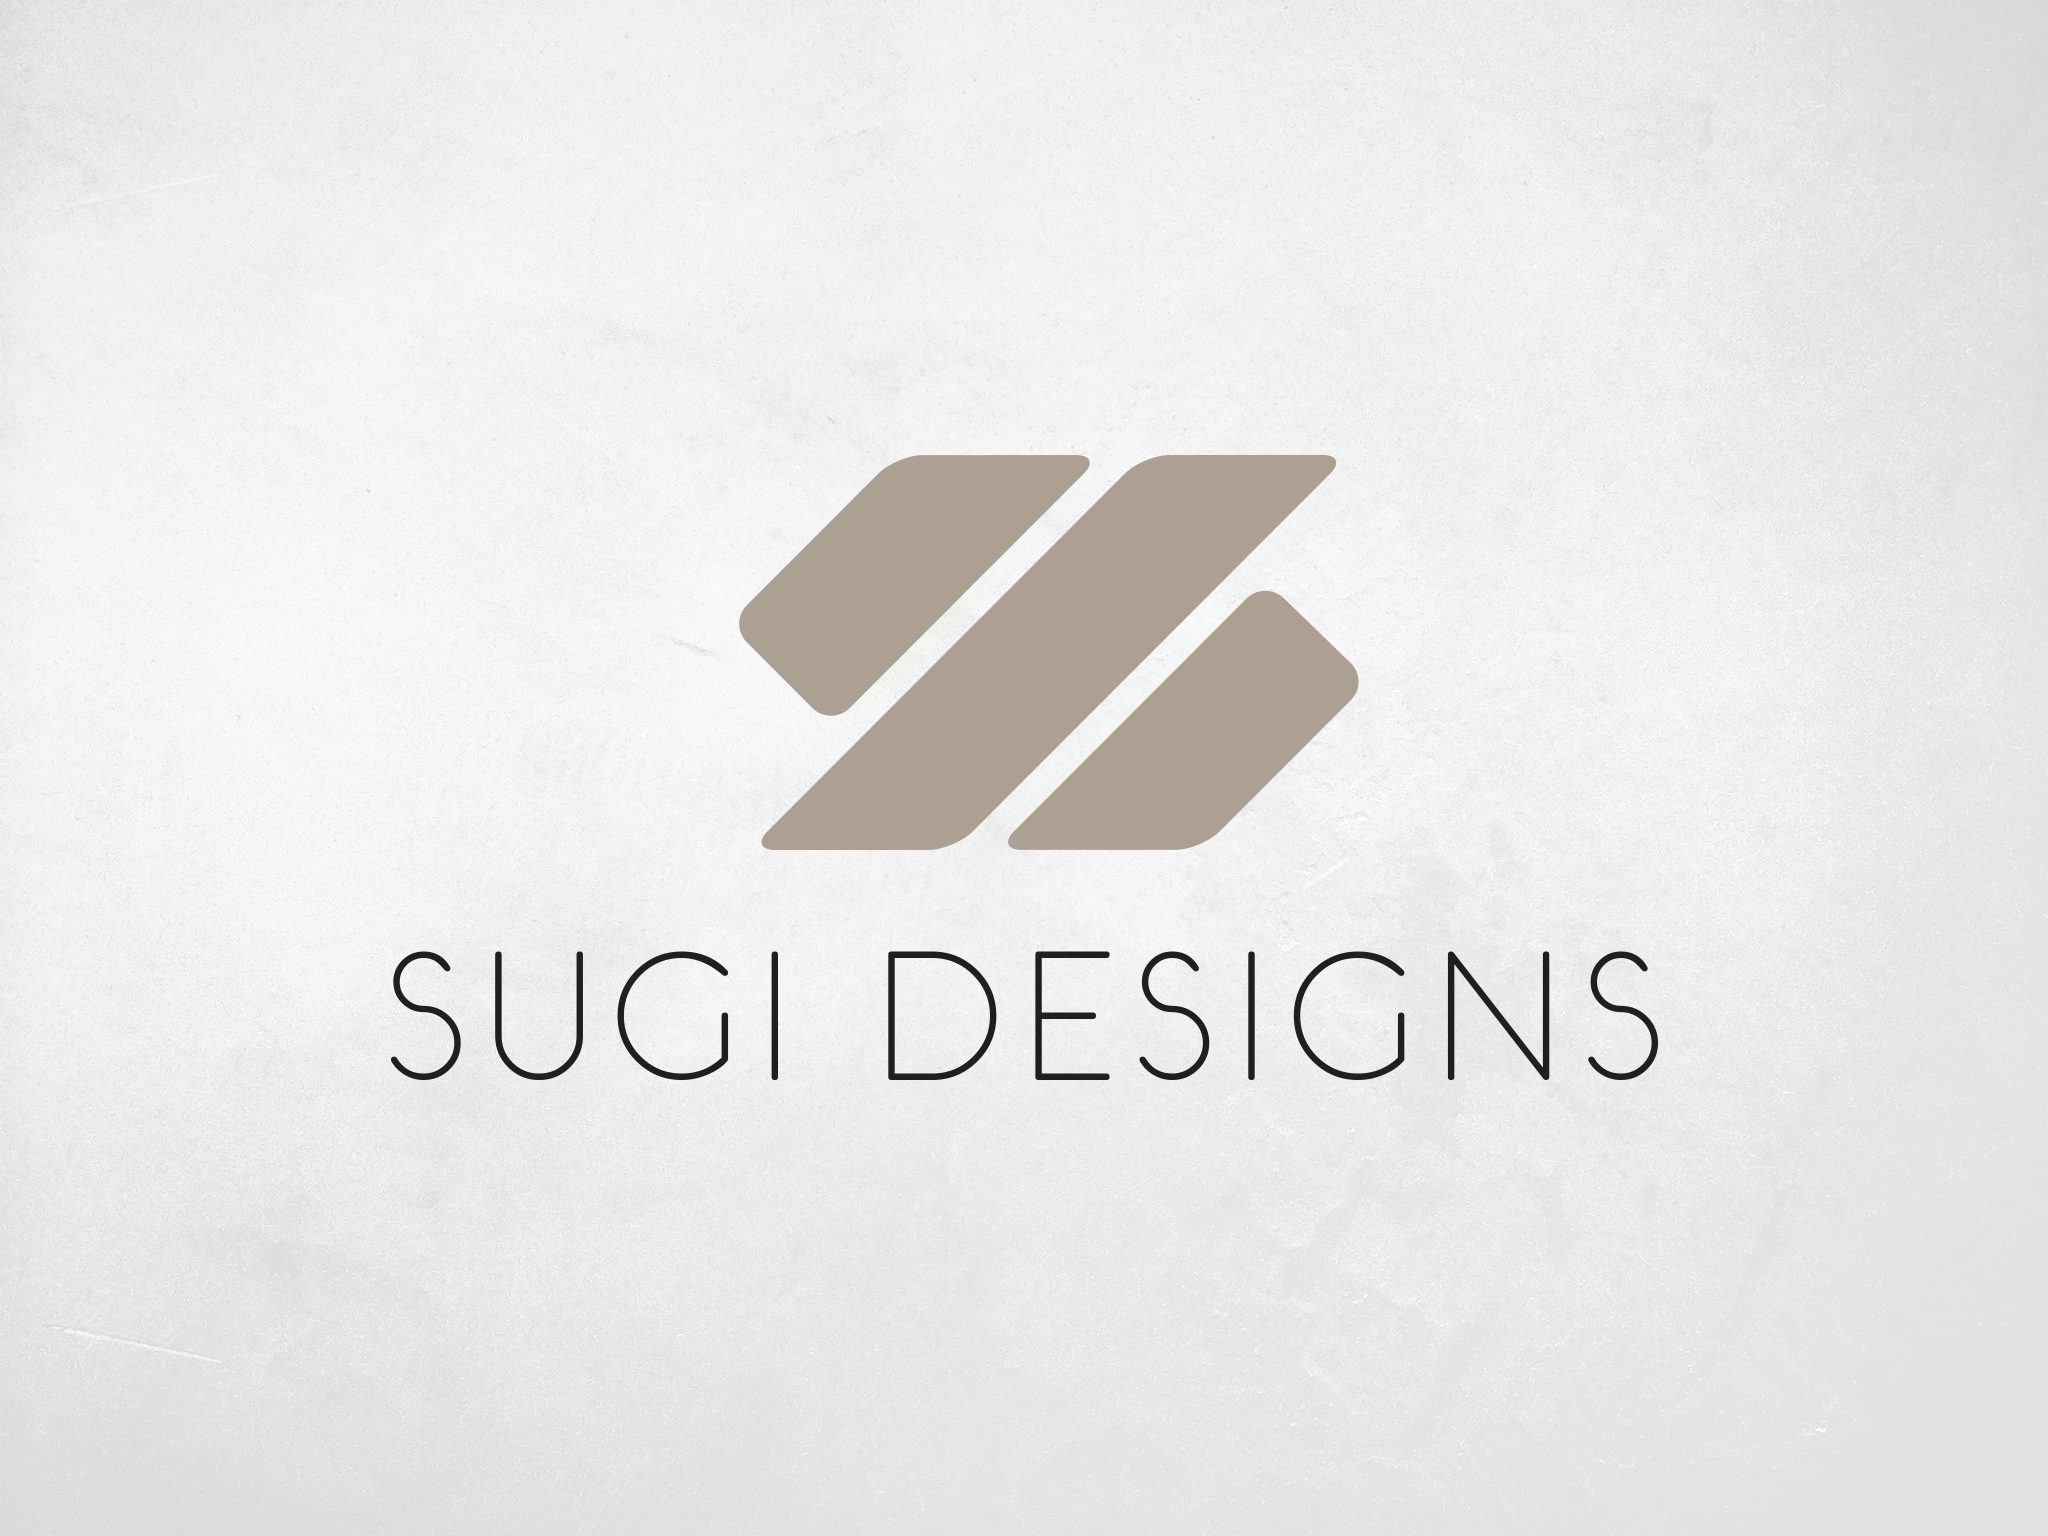 SUGI DESIGNS LOGO